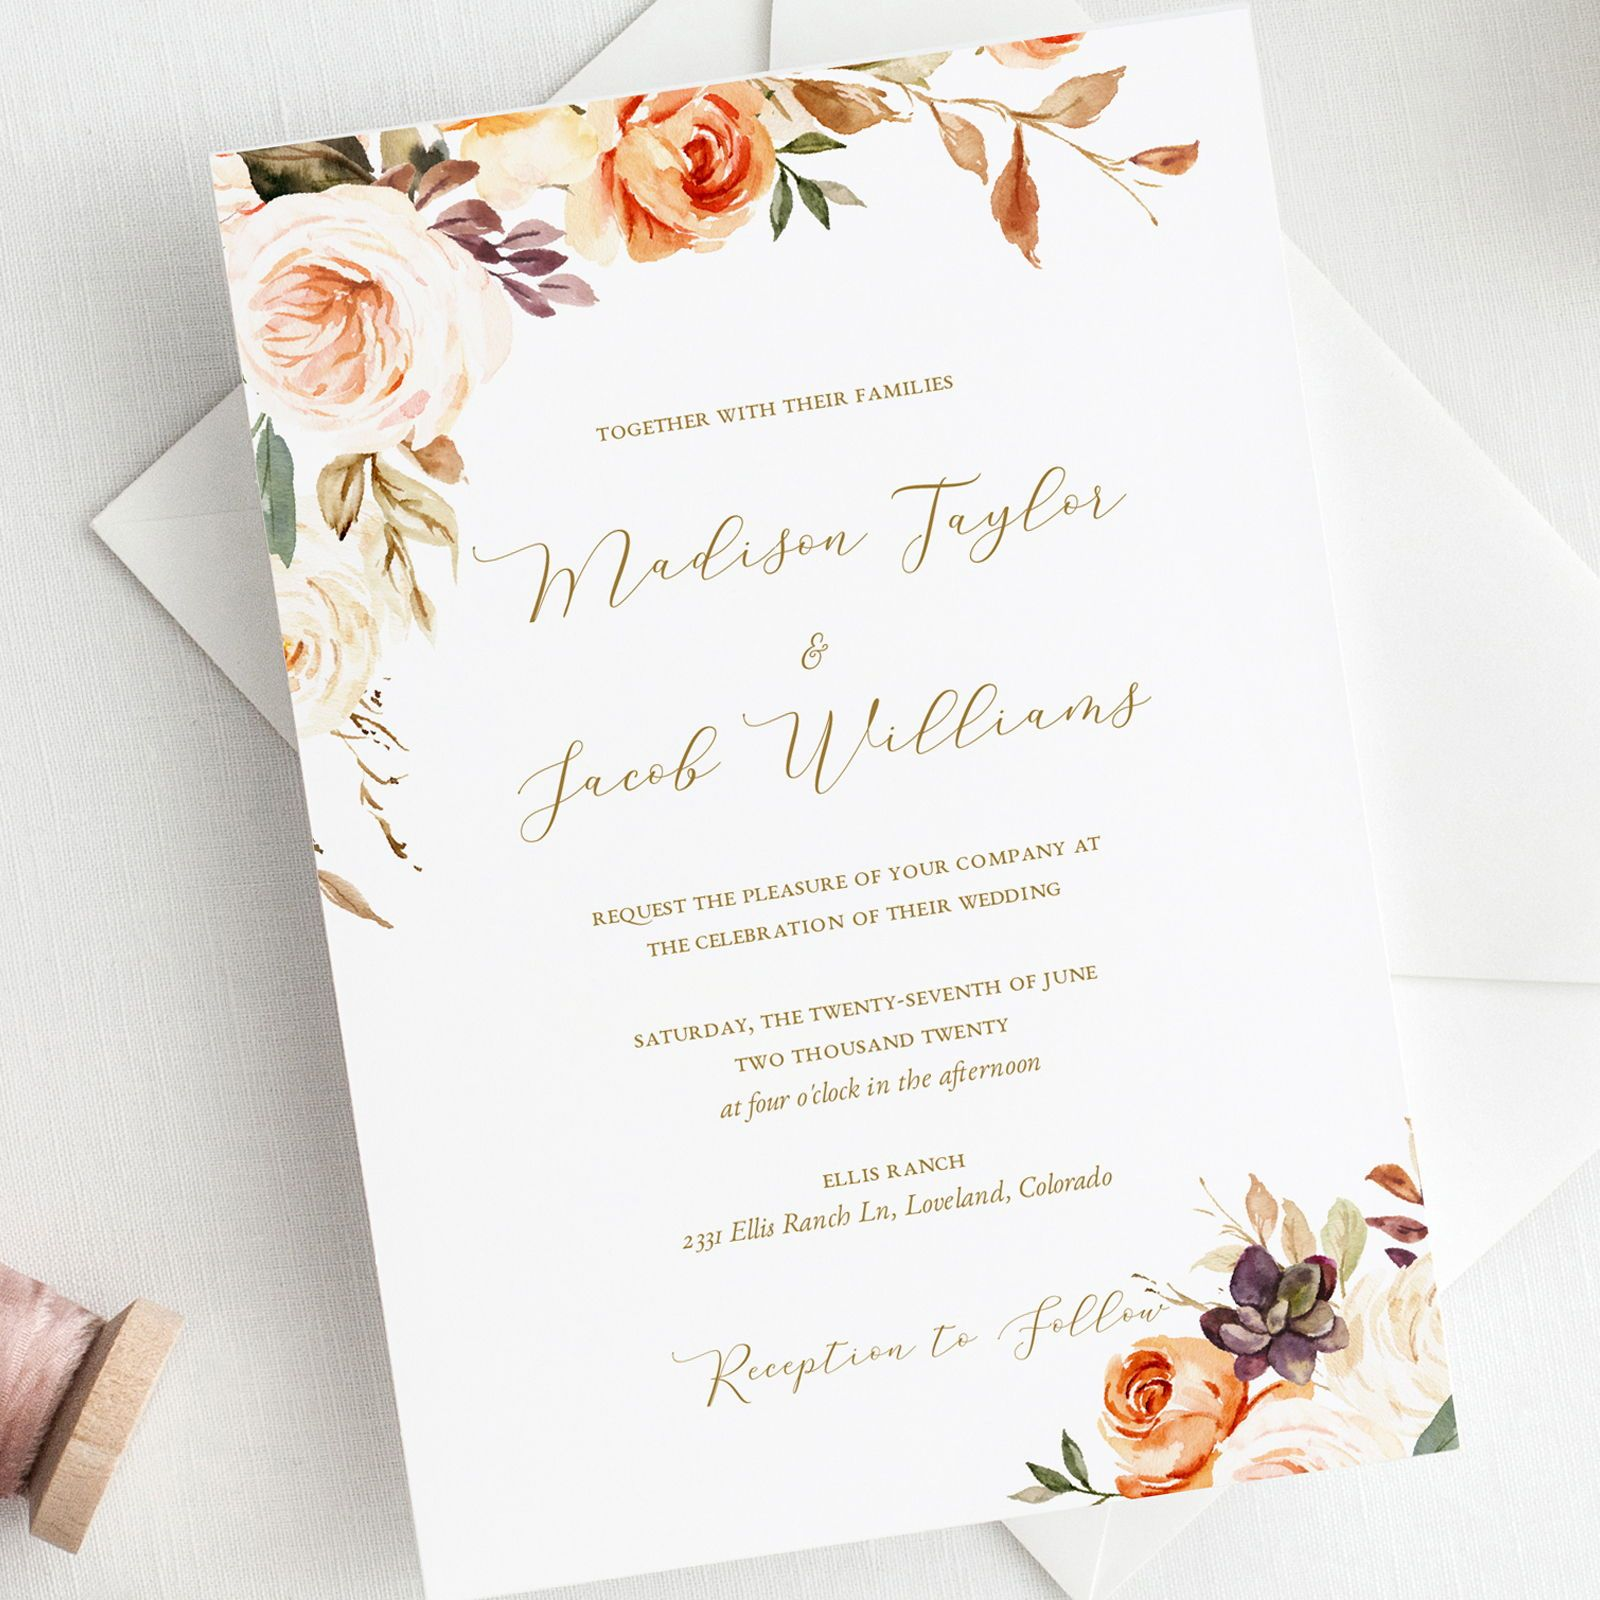 Fall Wedding Invitation Template Floral Wedding Invitation Etsy In 2020 Fall Wedding Invitations Wedding Invitations Wedding Invitation Templates